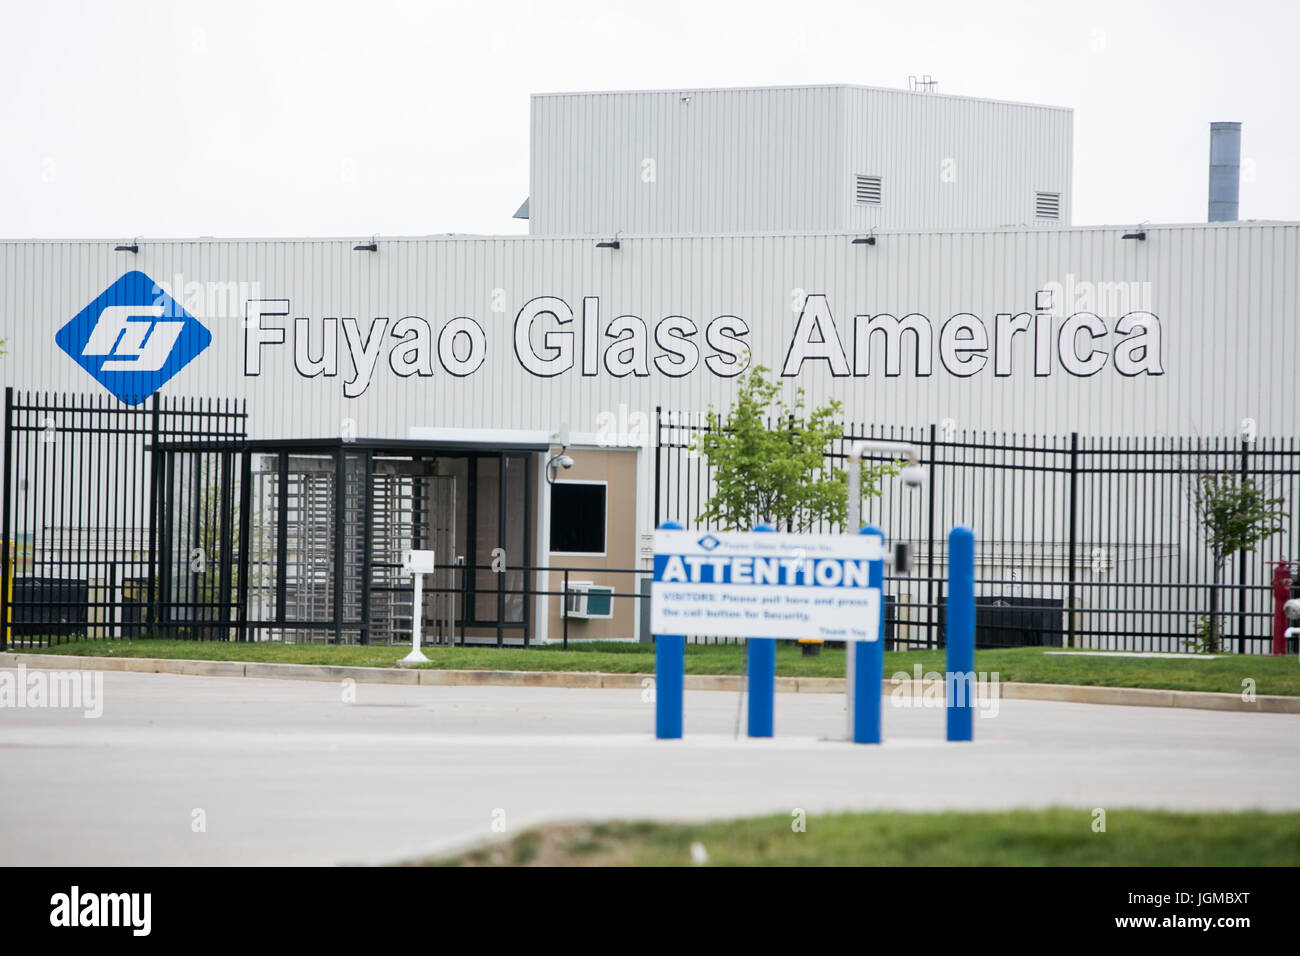 A logo sign outside of a facility occupied by Fuyao Glass America in Moraine, Ohio on June 30, 2017. - Stock Image